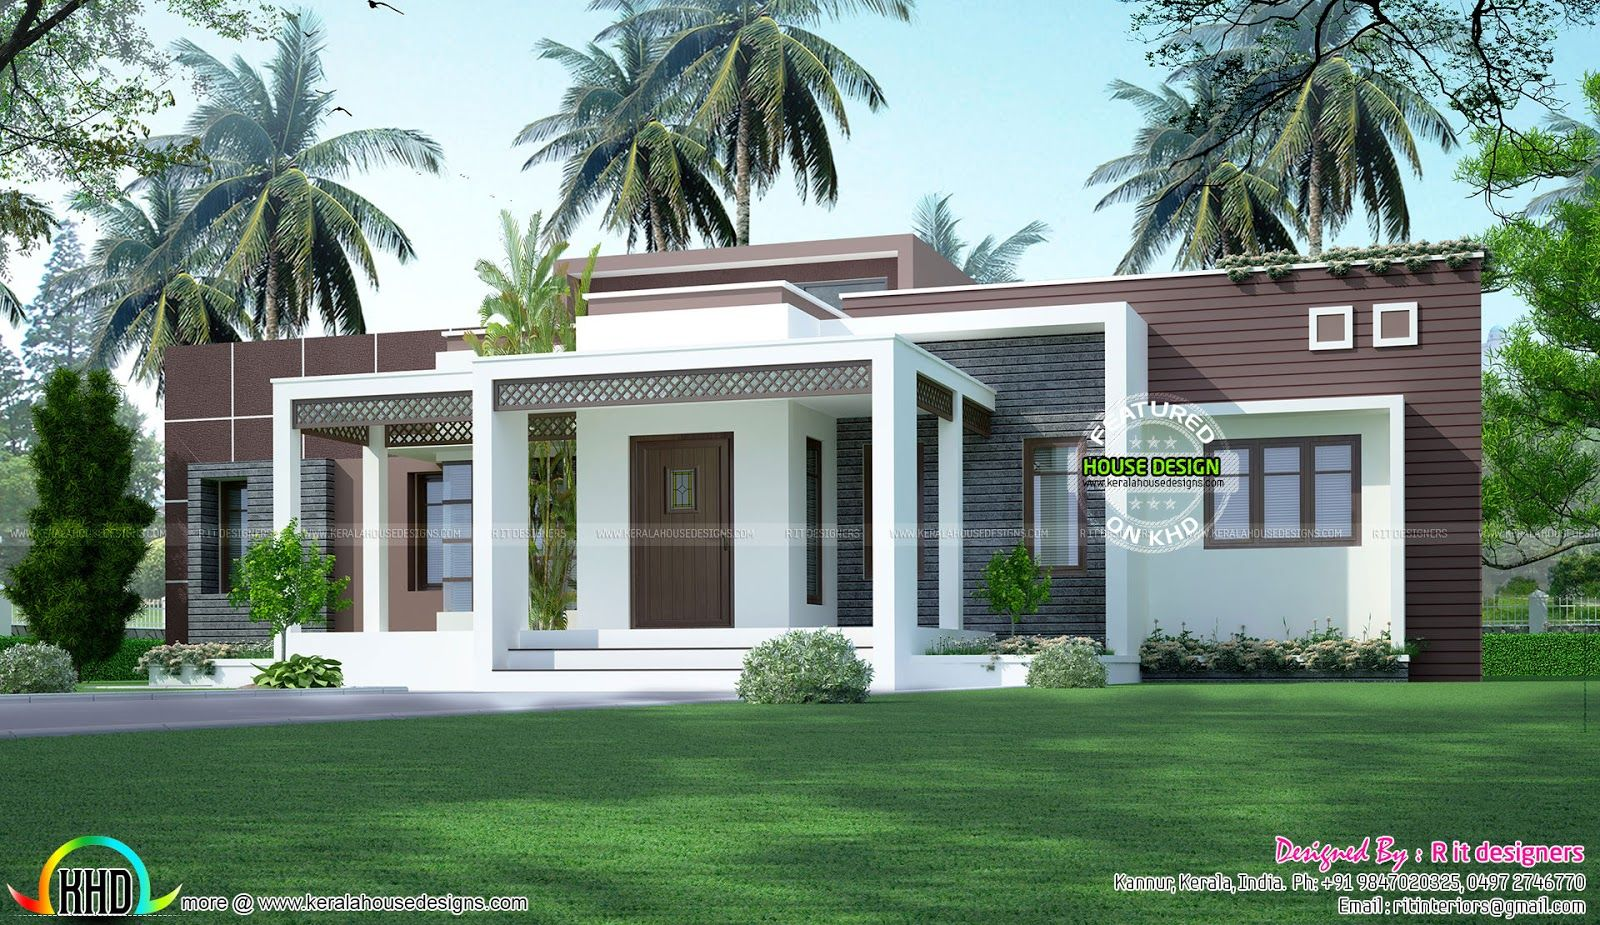 1775 sq ft flat roof one floor home exteriors bungalow - Single story 4 bedroom modern house plans ...